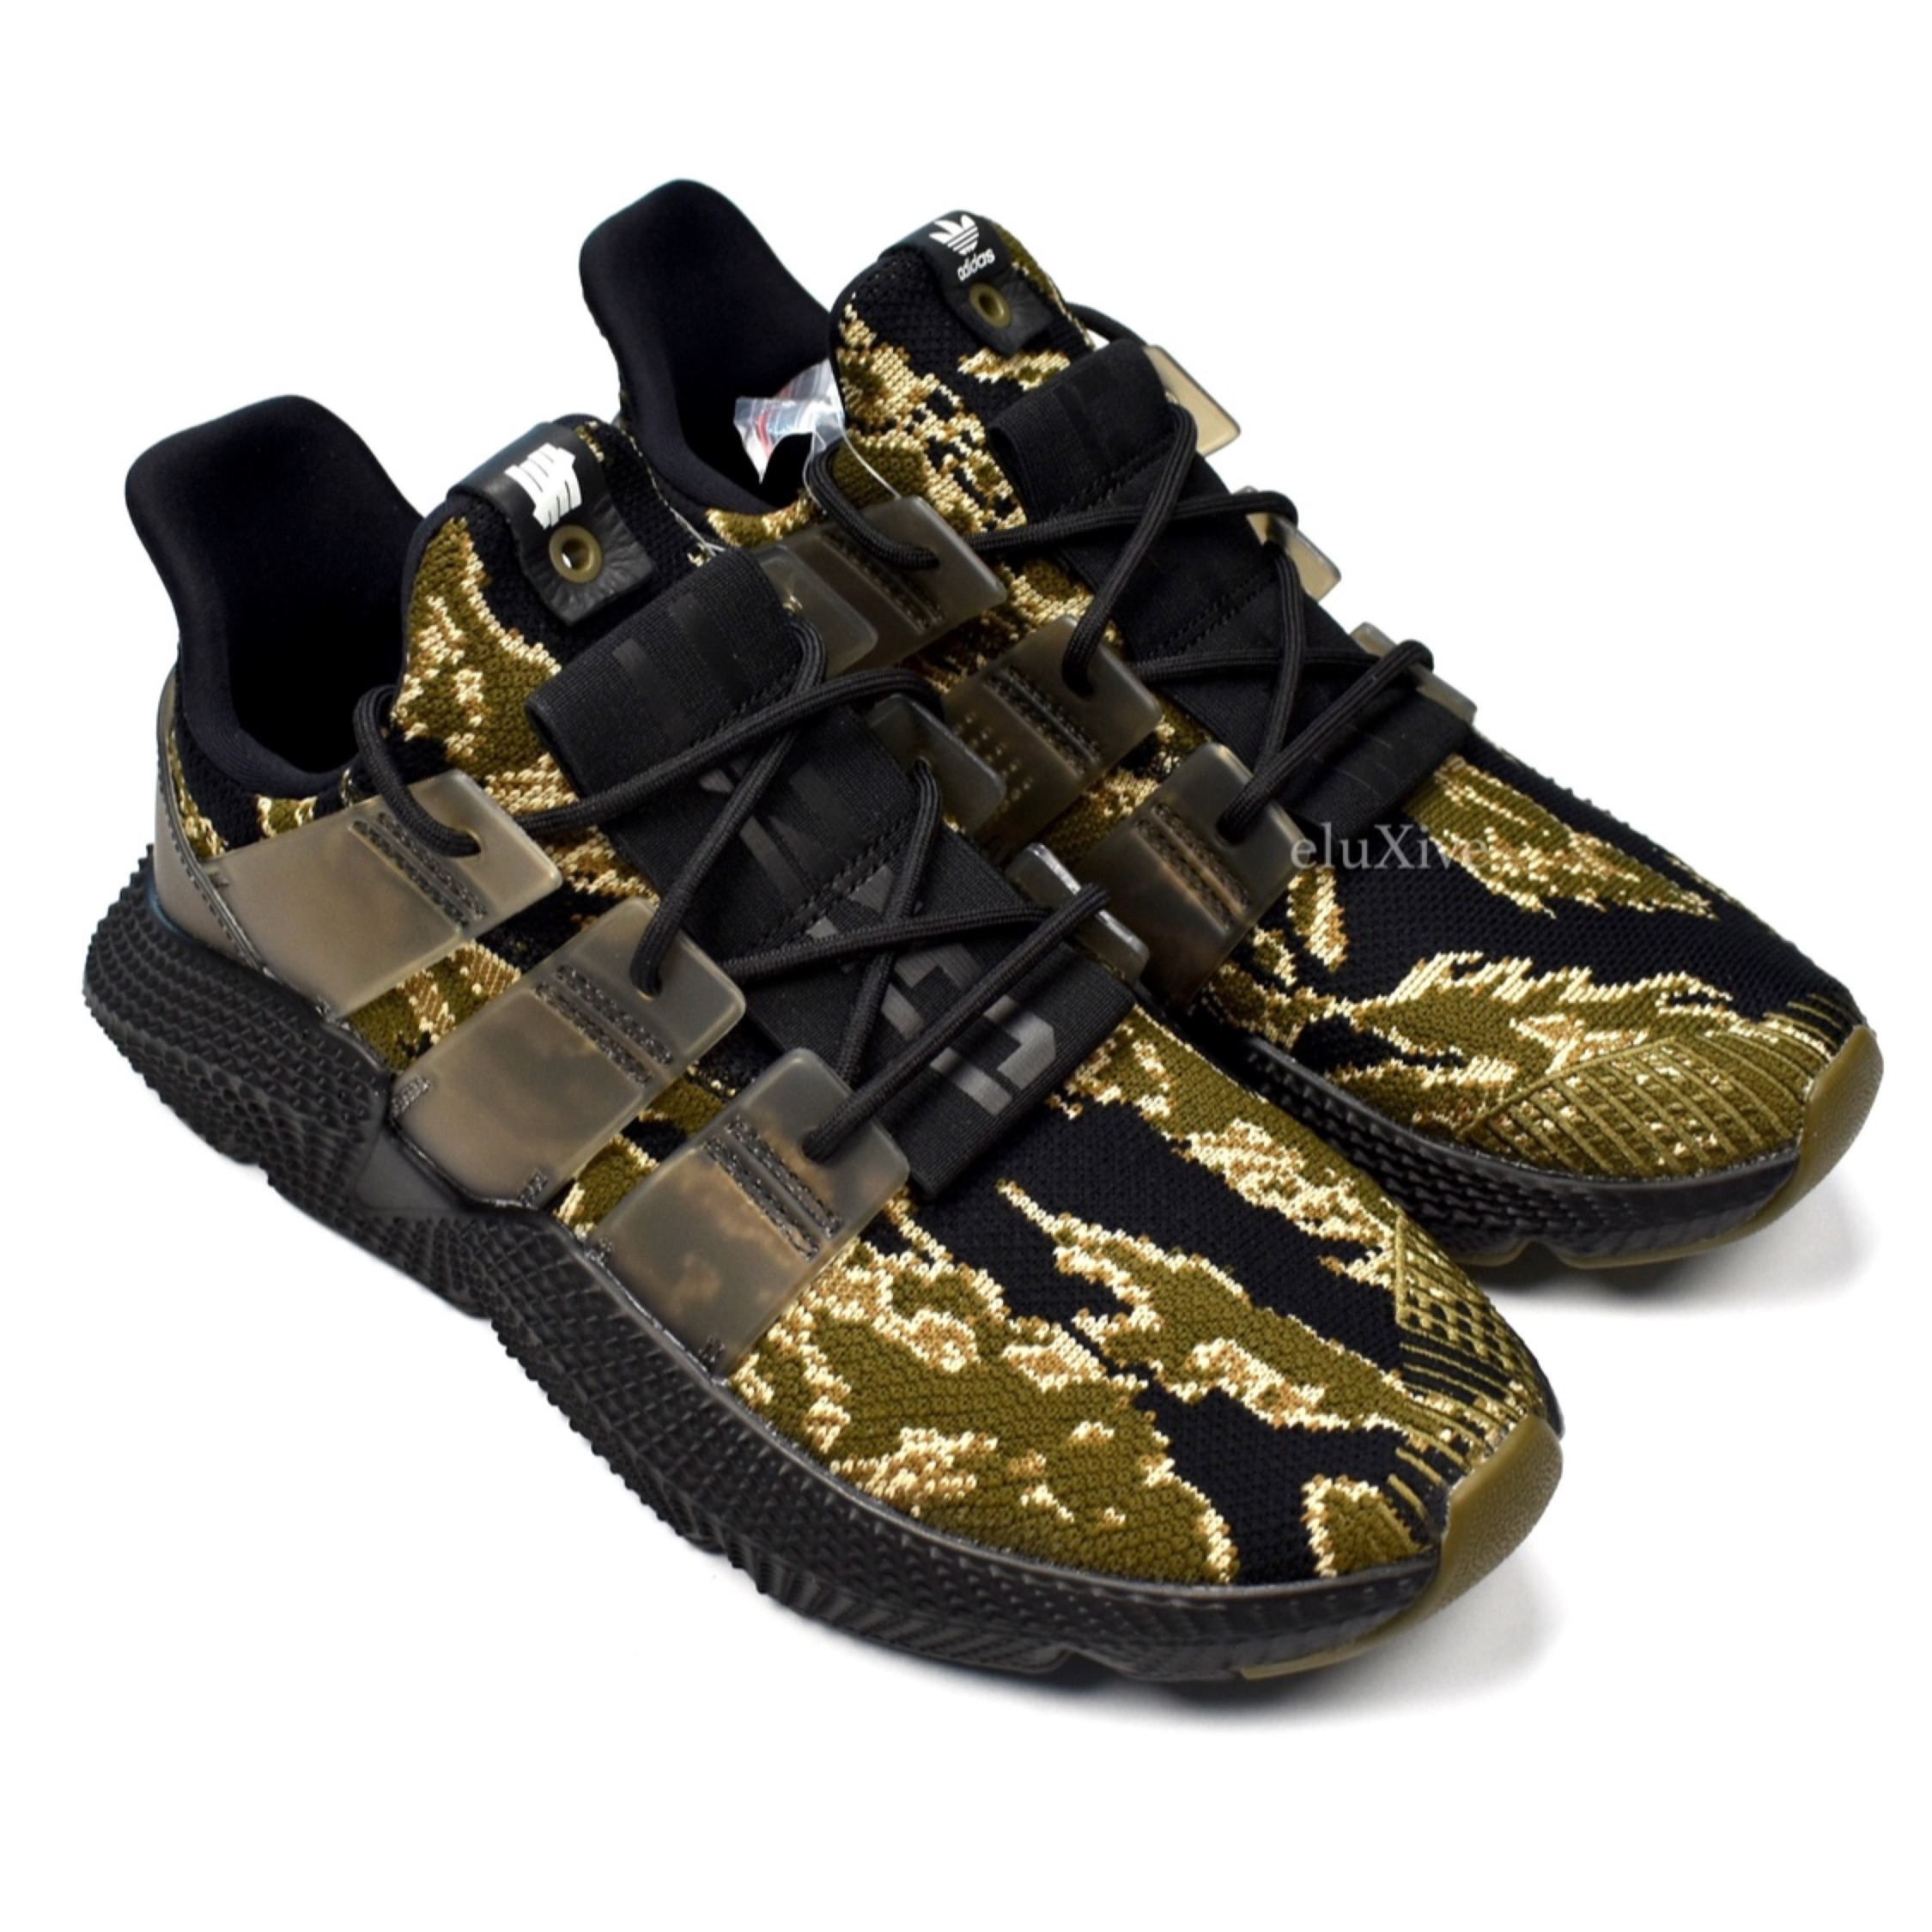 on sale ba126 9c713 Adidas X Undefeated Prophere Tiger Camo New